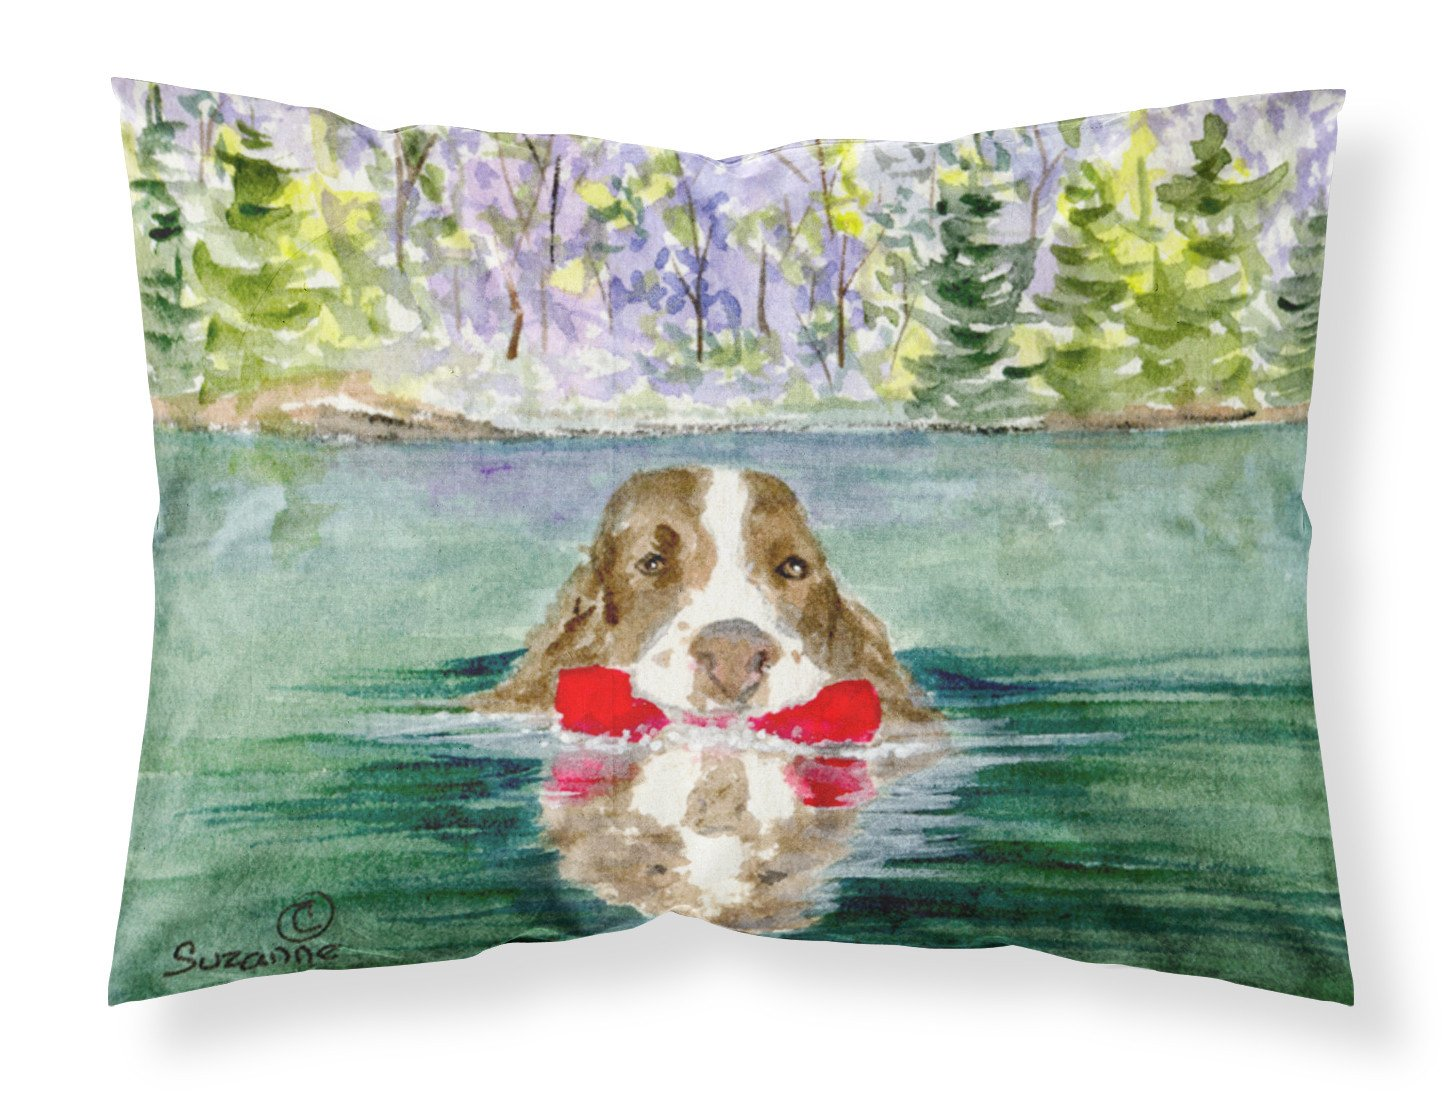 Springer Spaniel Moisture wicking Fabric standard pillowcase by Caroline's Treasures